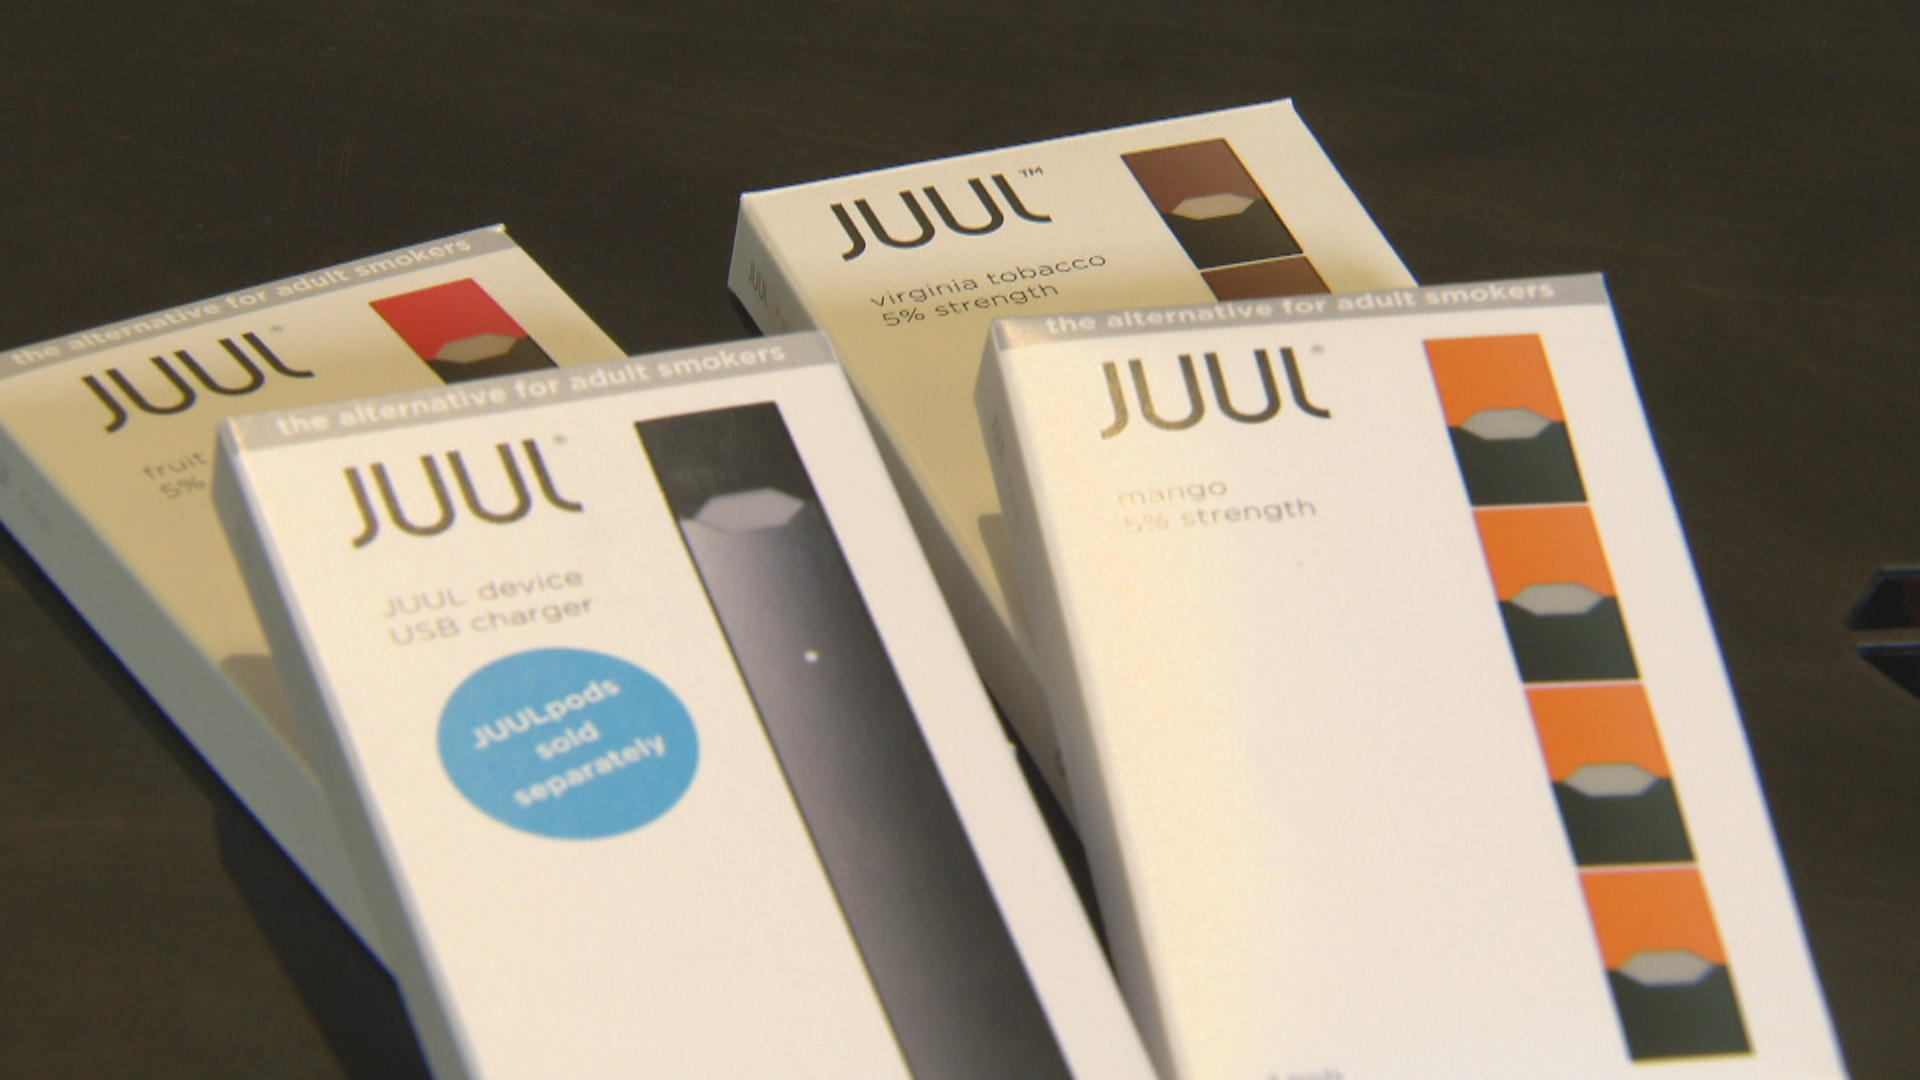 Juul e-cigarettes: Teens are hooked on Juul, but a top exec